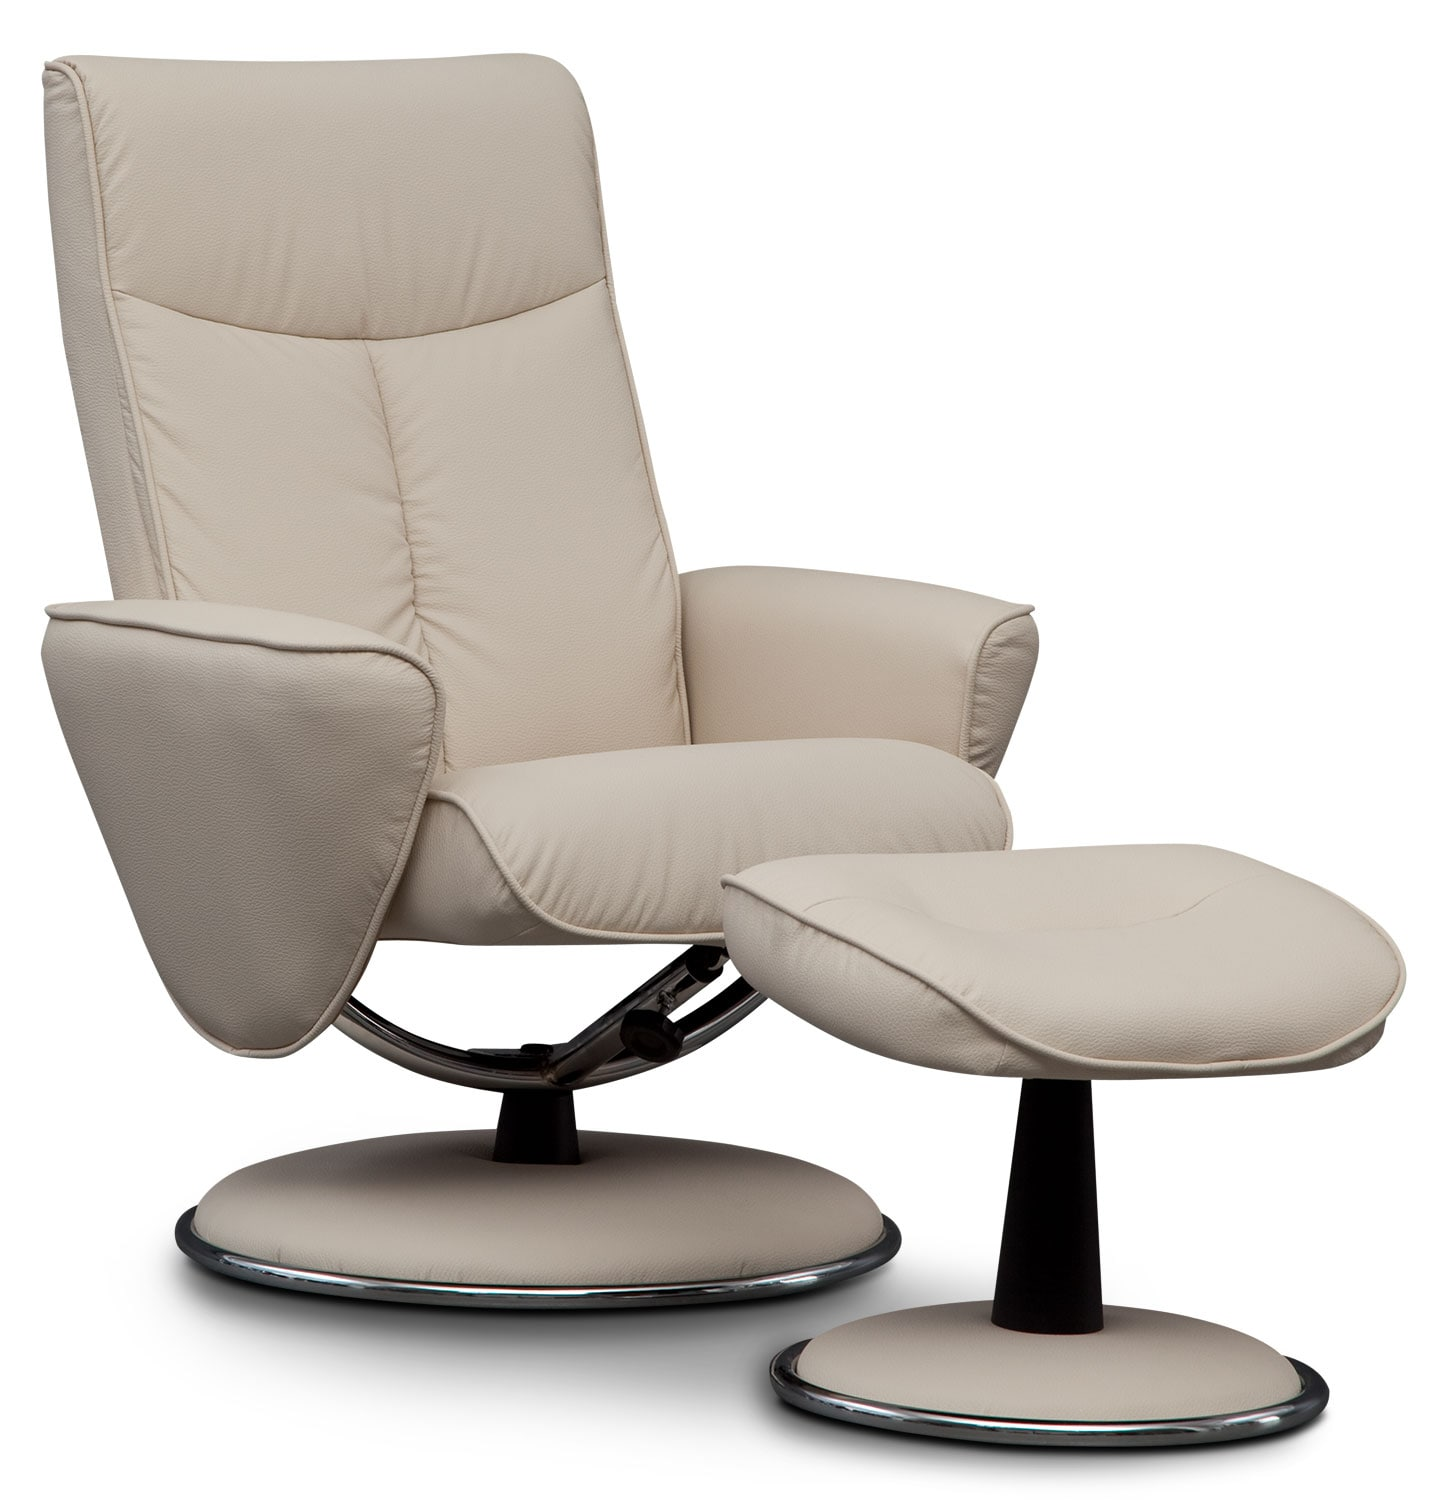 Living Room Furniture - Tracer Reclining Chair and Ottoman - Snow